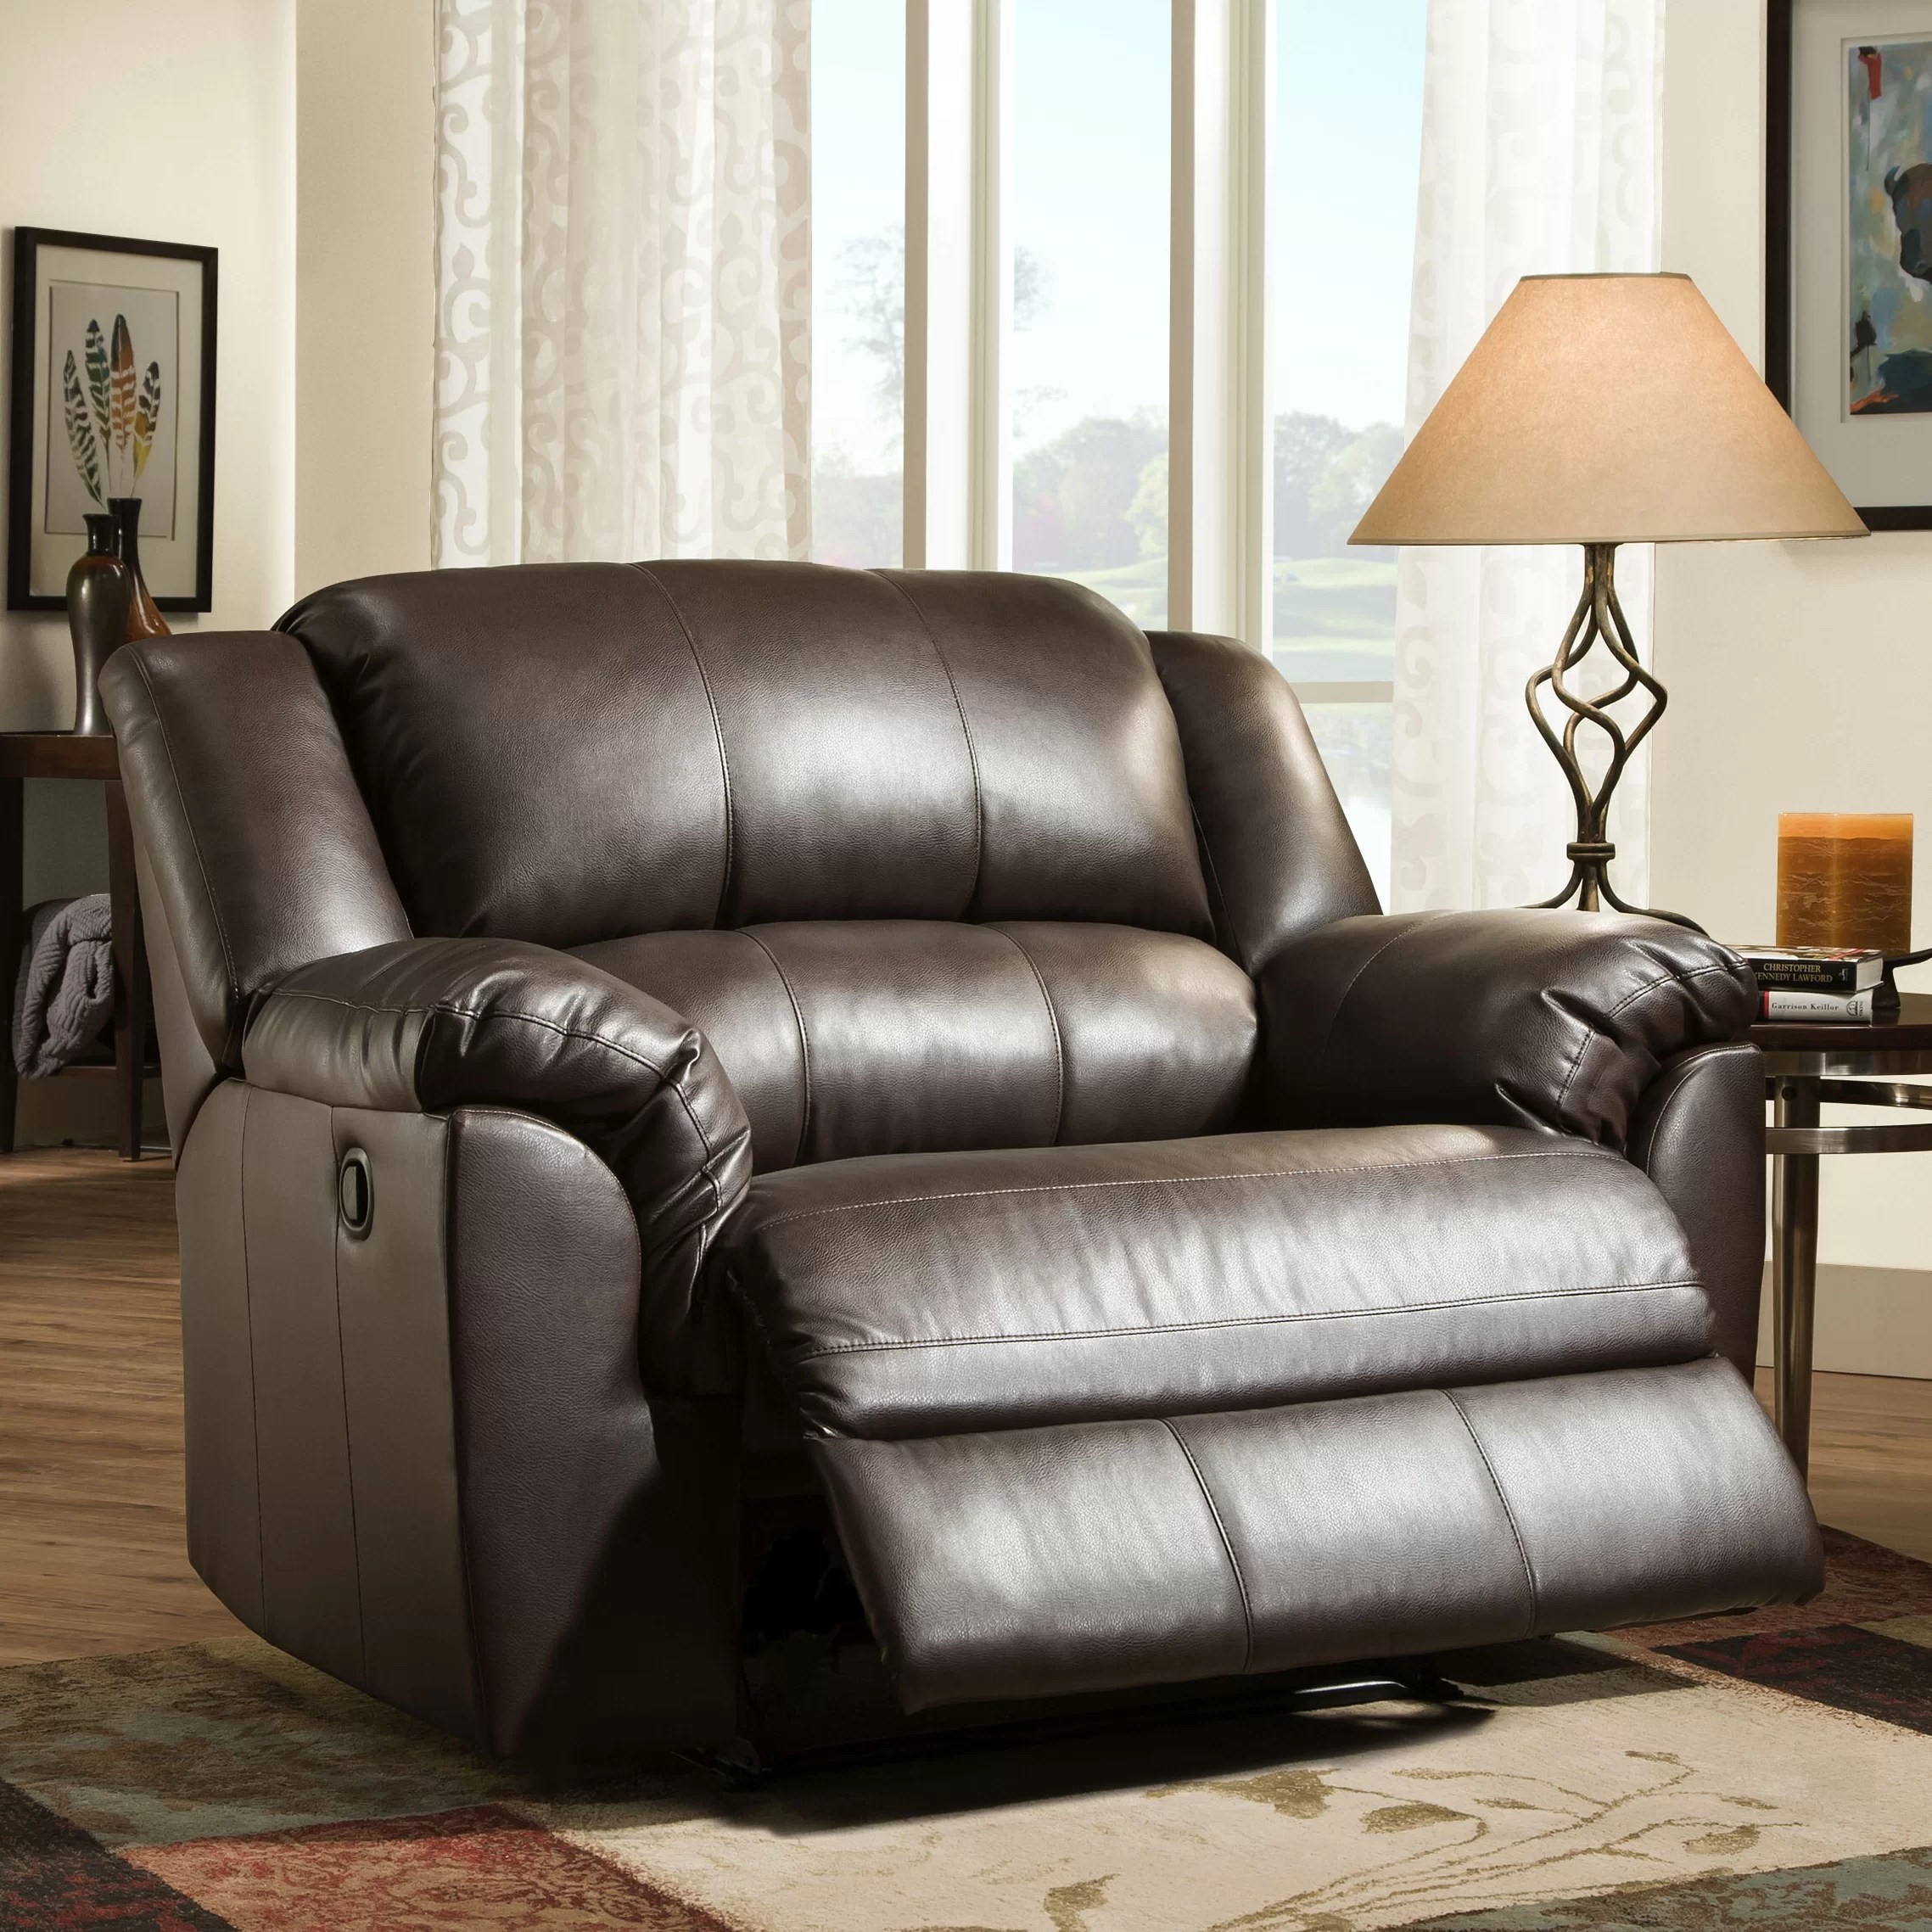 Double Wide Recliner Chair Cuddler Recliner Wayfair